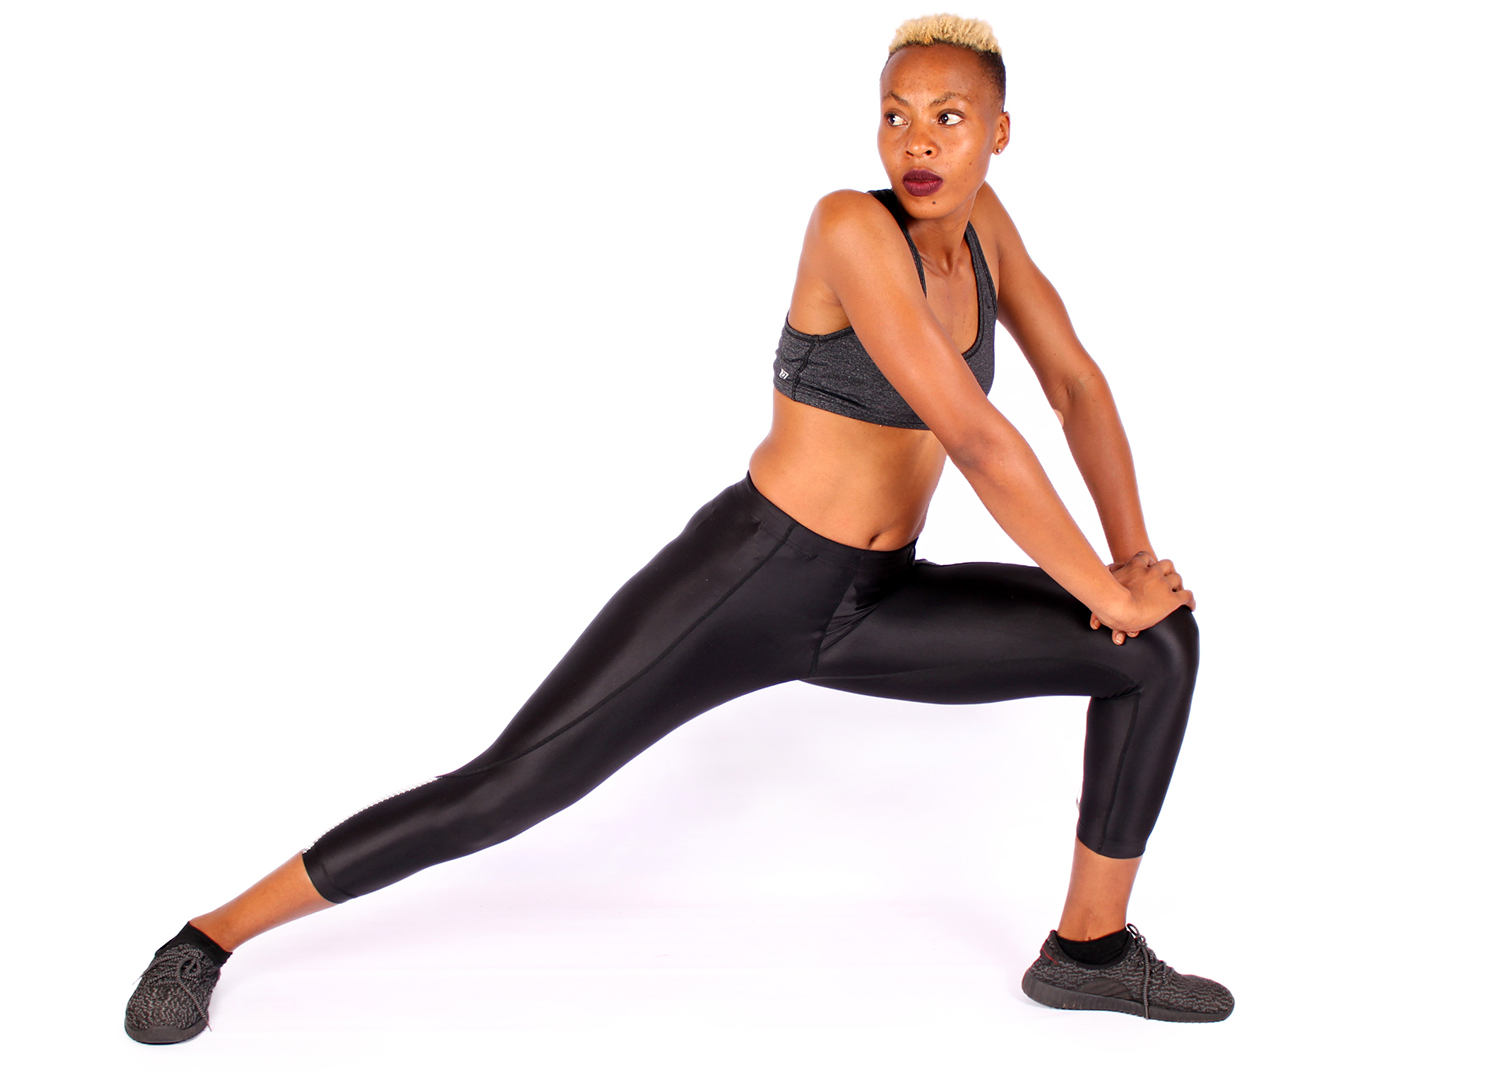 Slim Woman Stretching Legs in Side Lunge Position